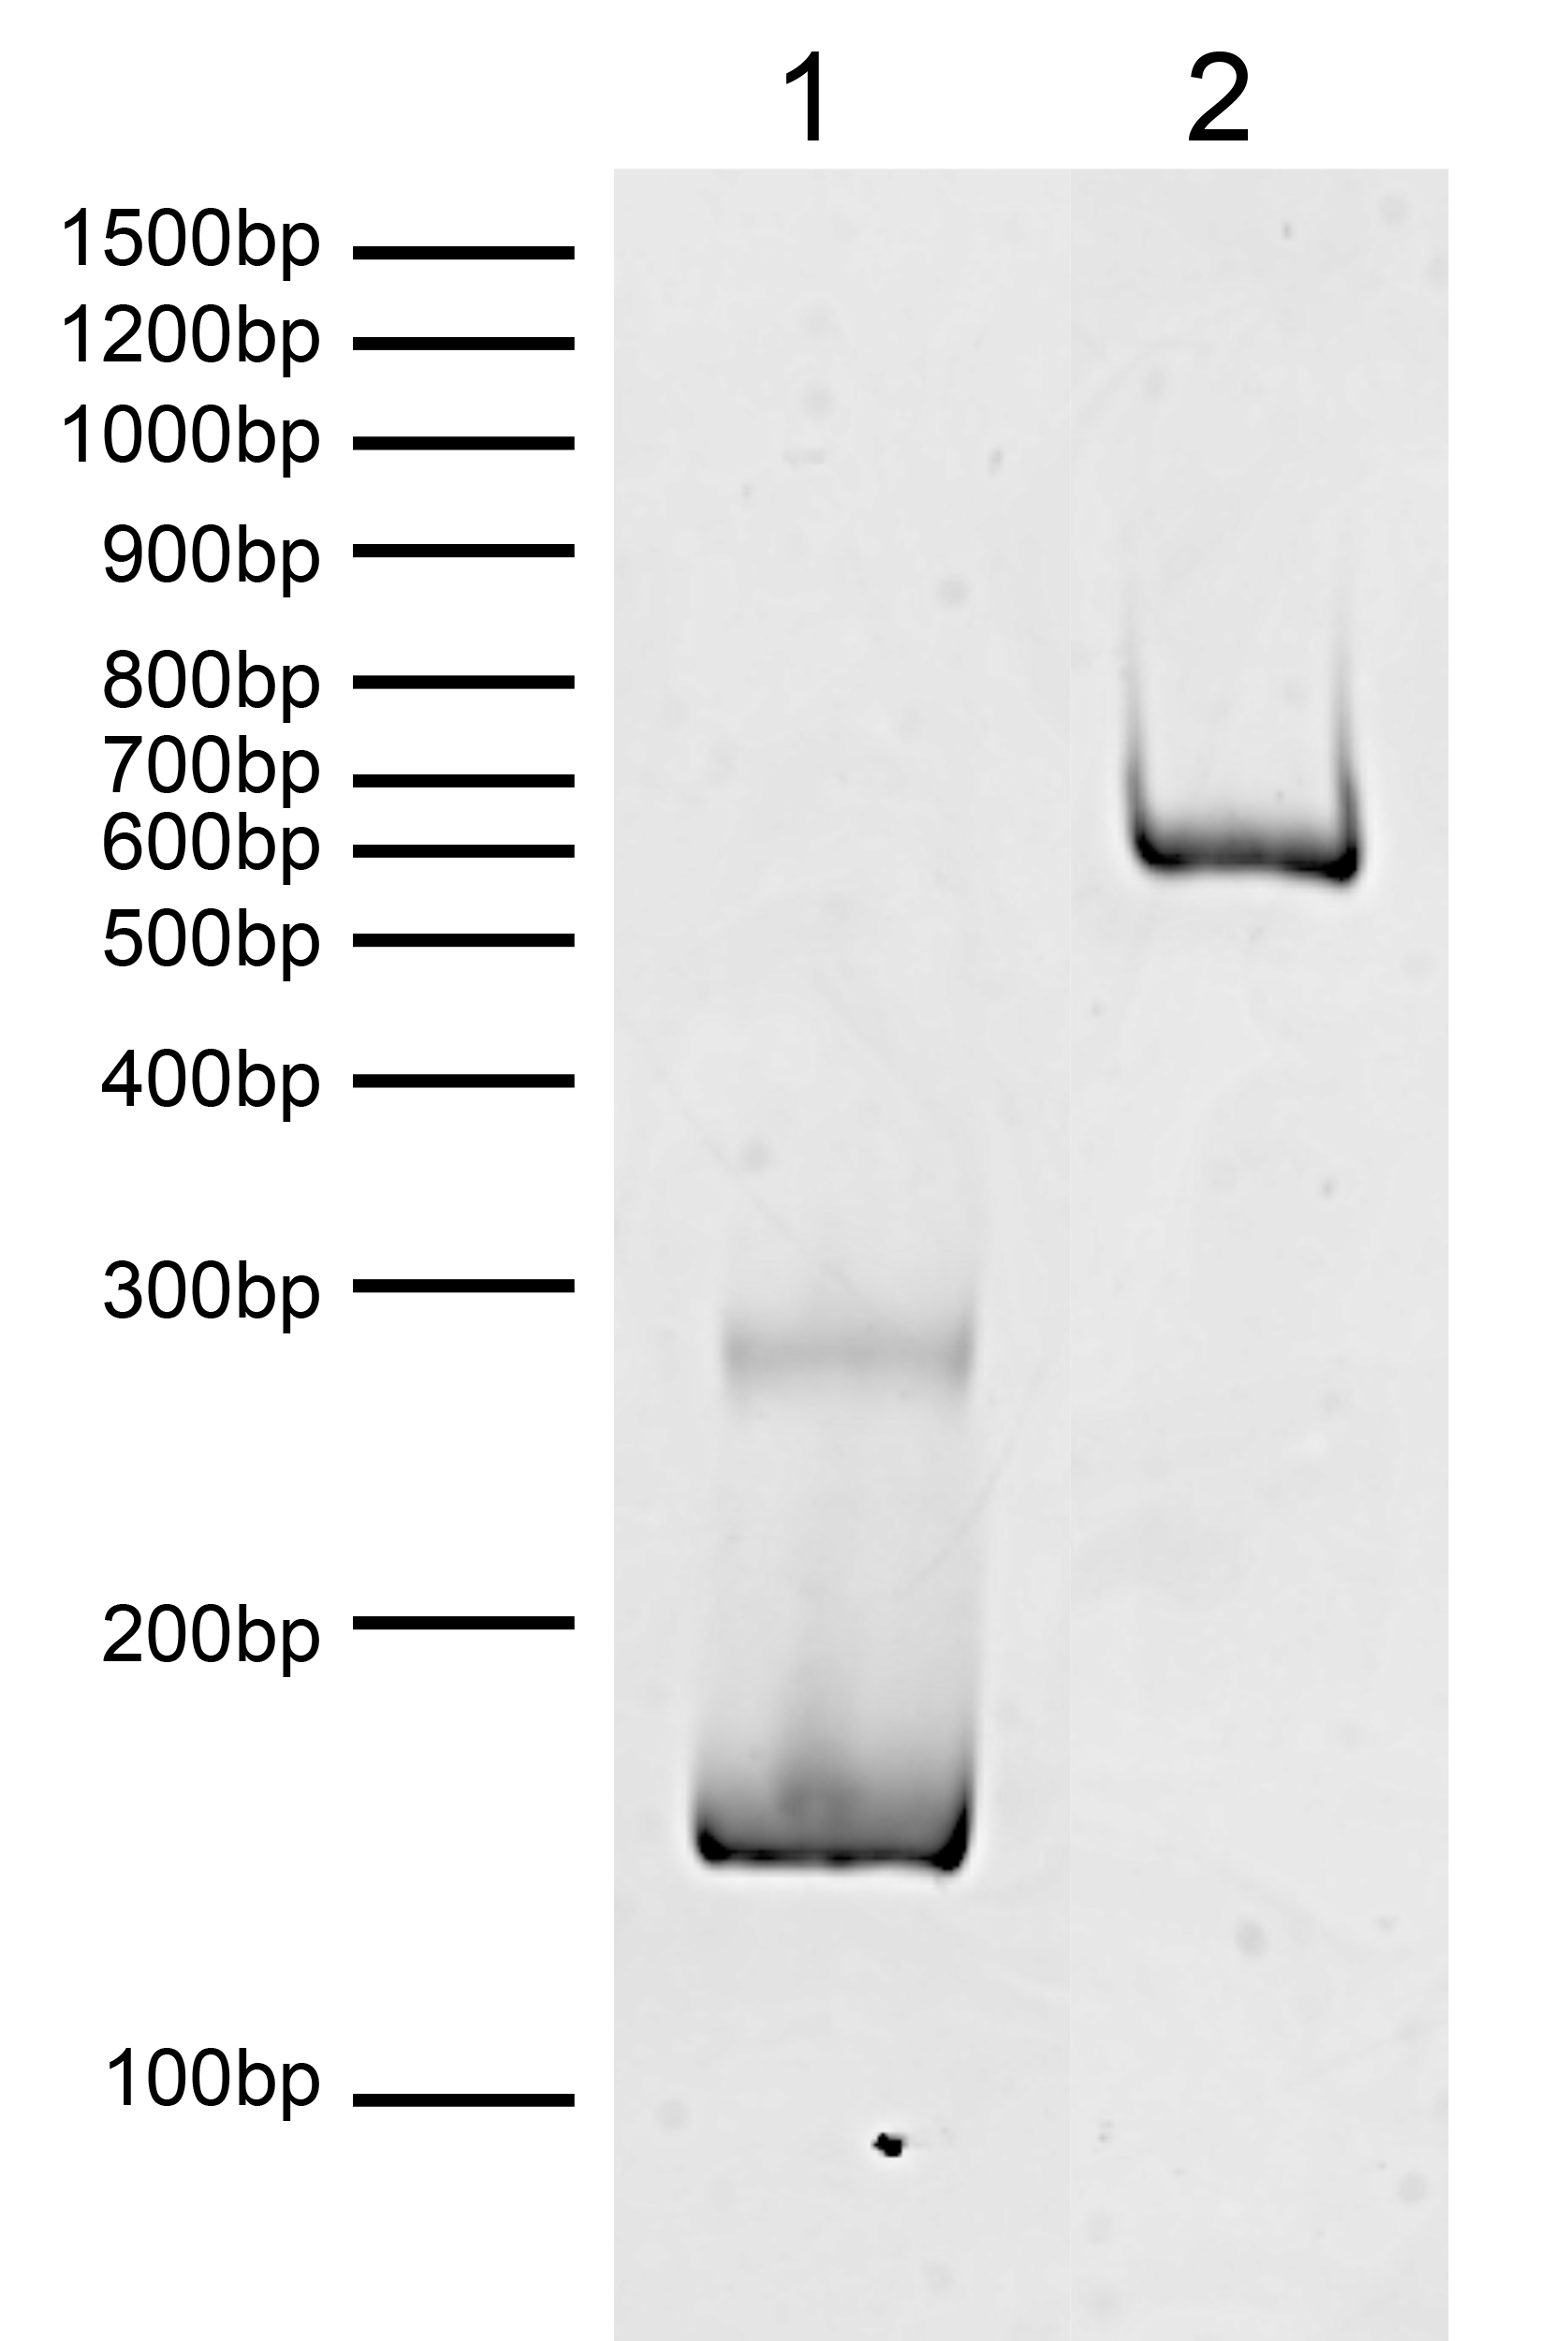 16-0373 DNA Gel Data